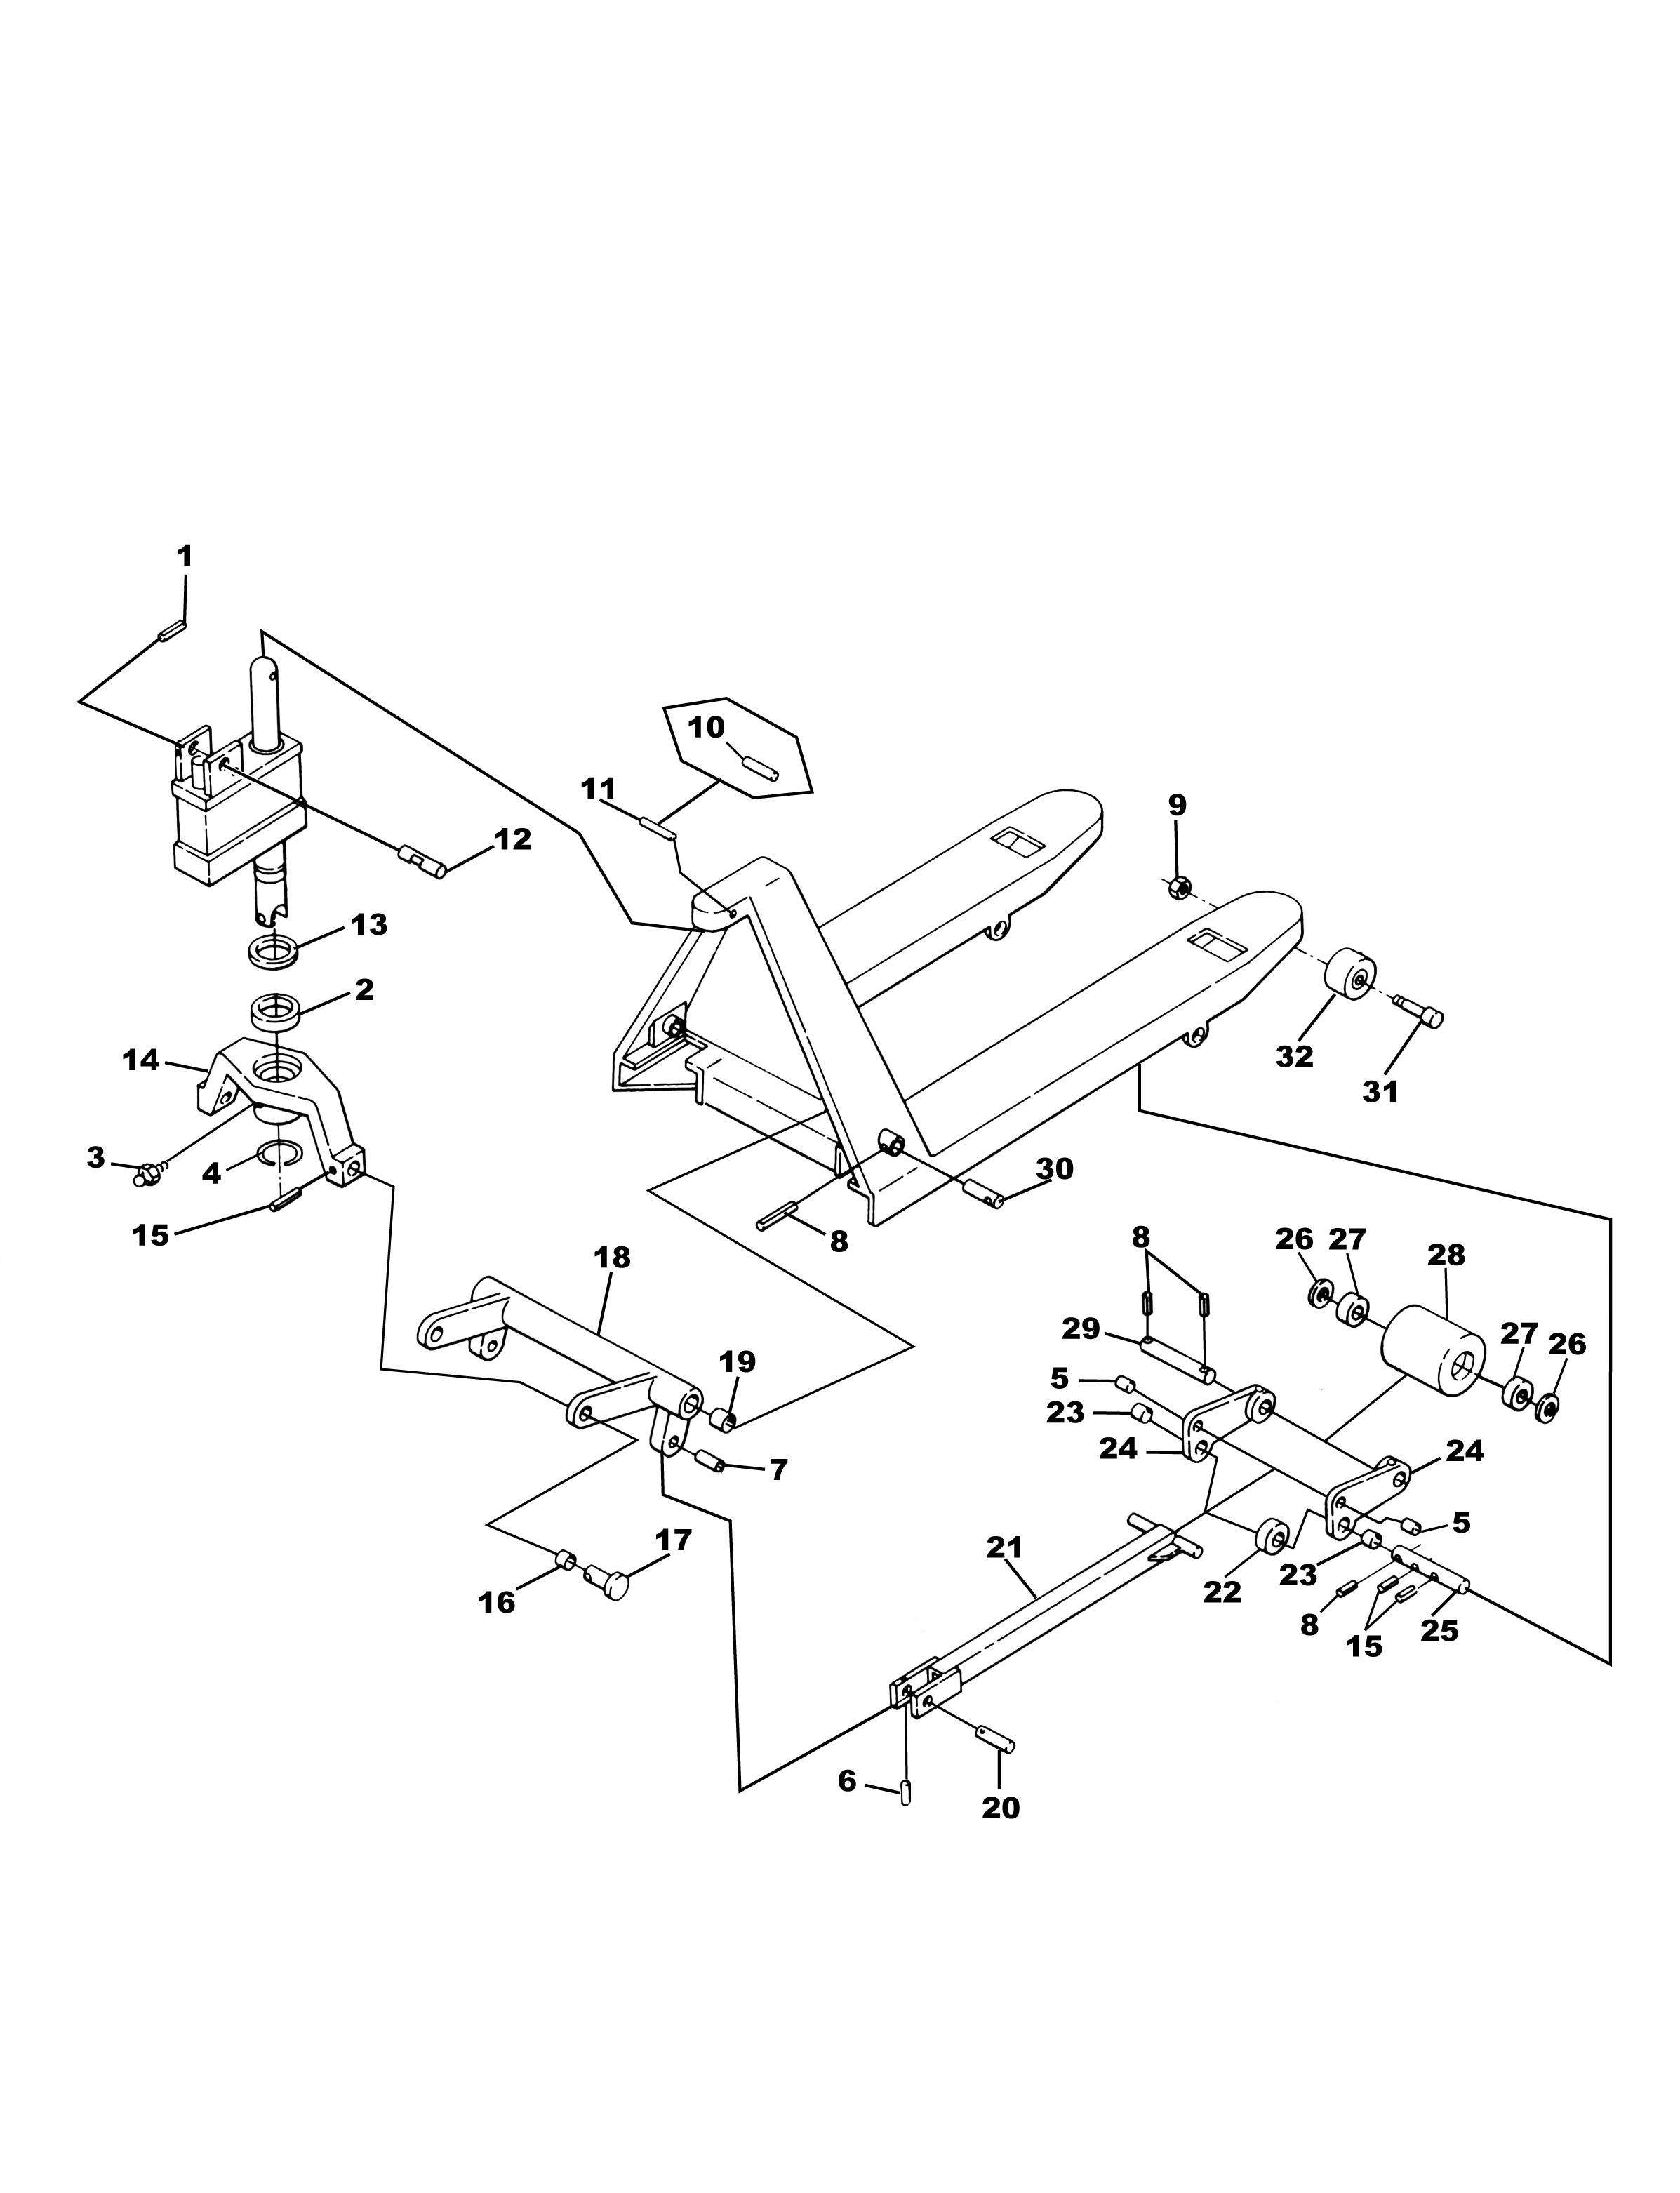 crown lift truck parts diagram  u2022 wiring diagram for free